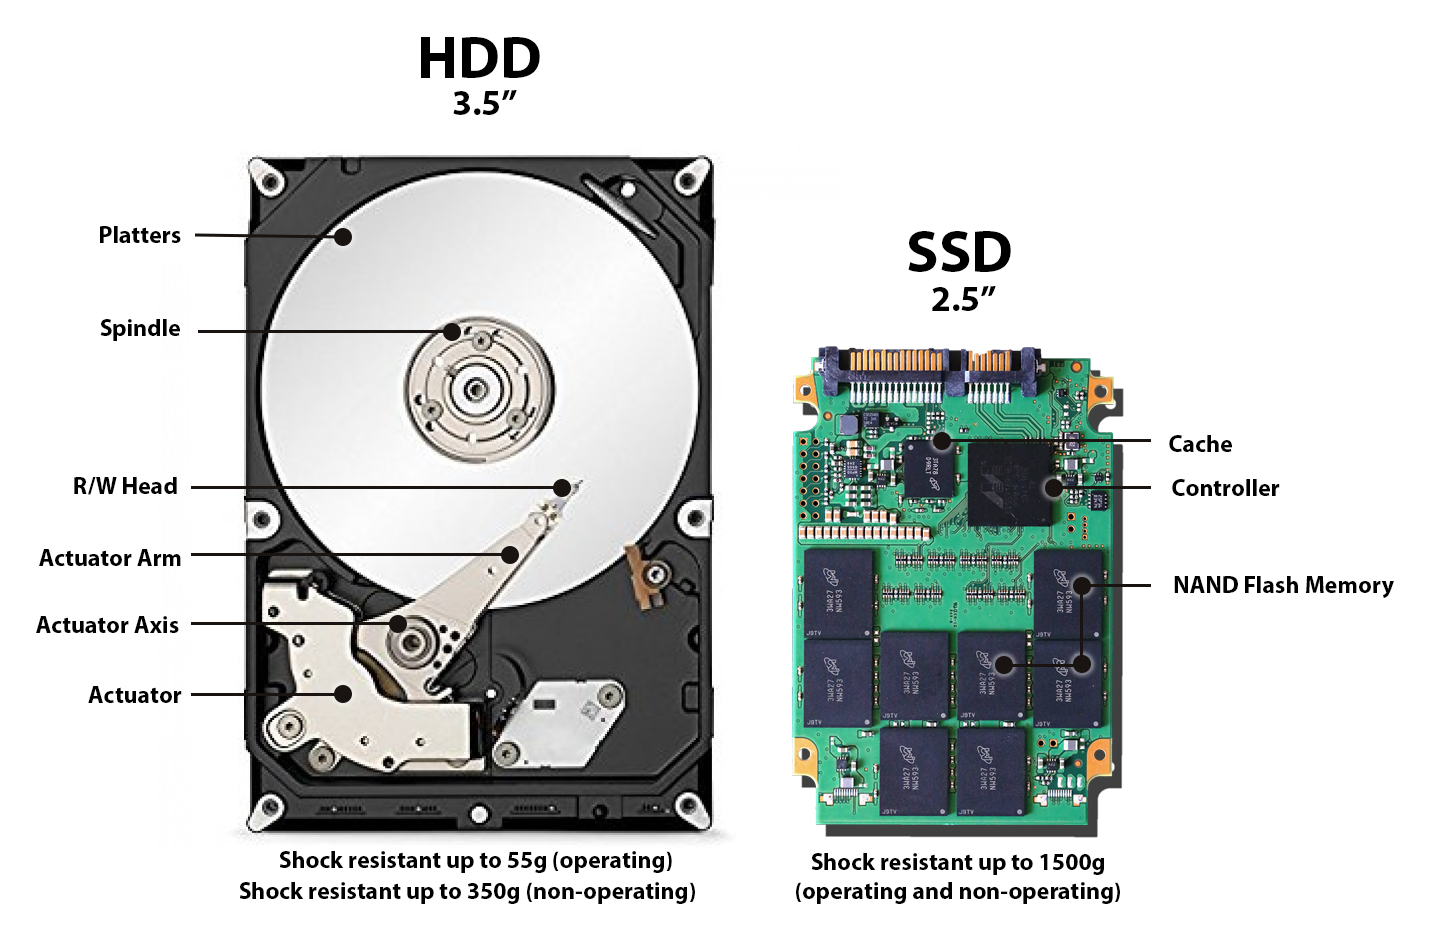 HDD vs SSD  sc 1 st  Backblaze & HDD vs SSD: What Does the Future for Storage Hold